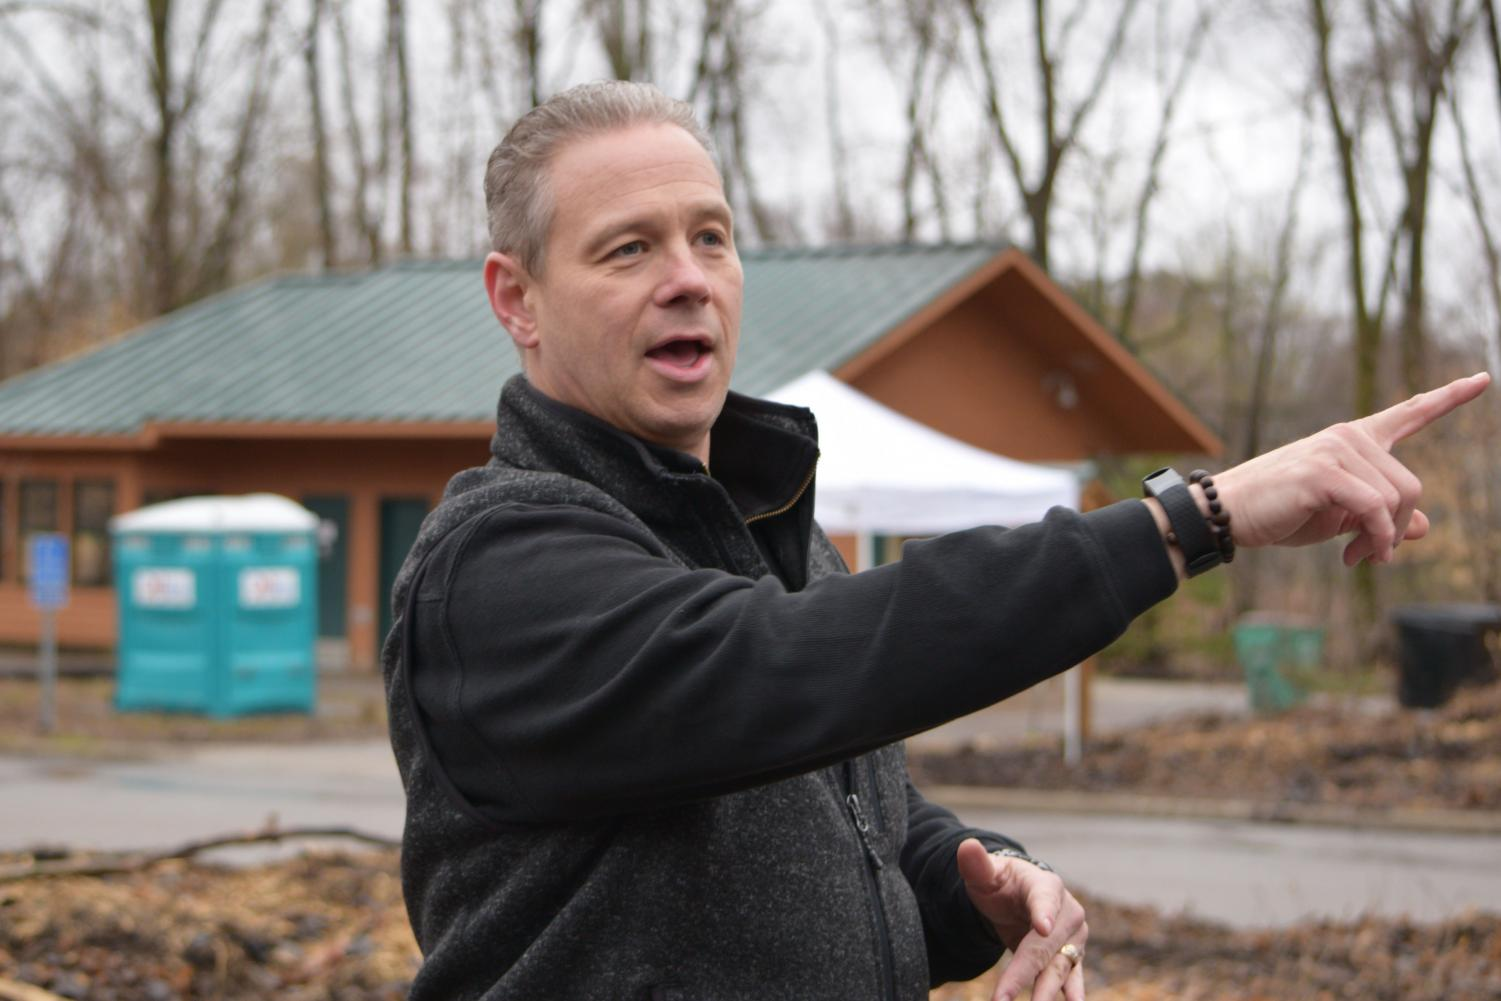 St. Louis Park Recreation superintendent Jason West points out features of the future interpretive center to community members at the groundbreaking ceremony April 22. Construction will begin in May 2019.